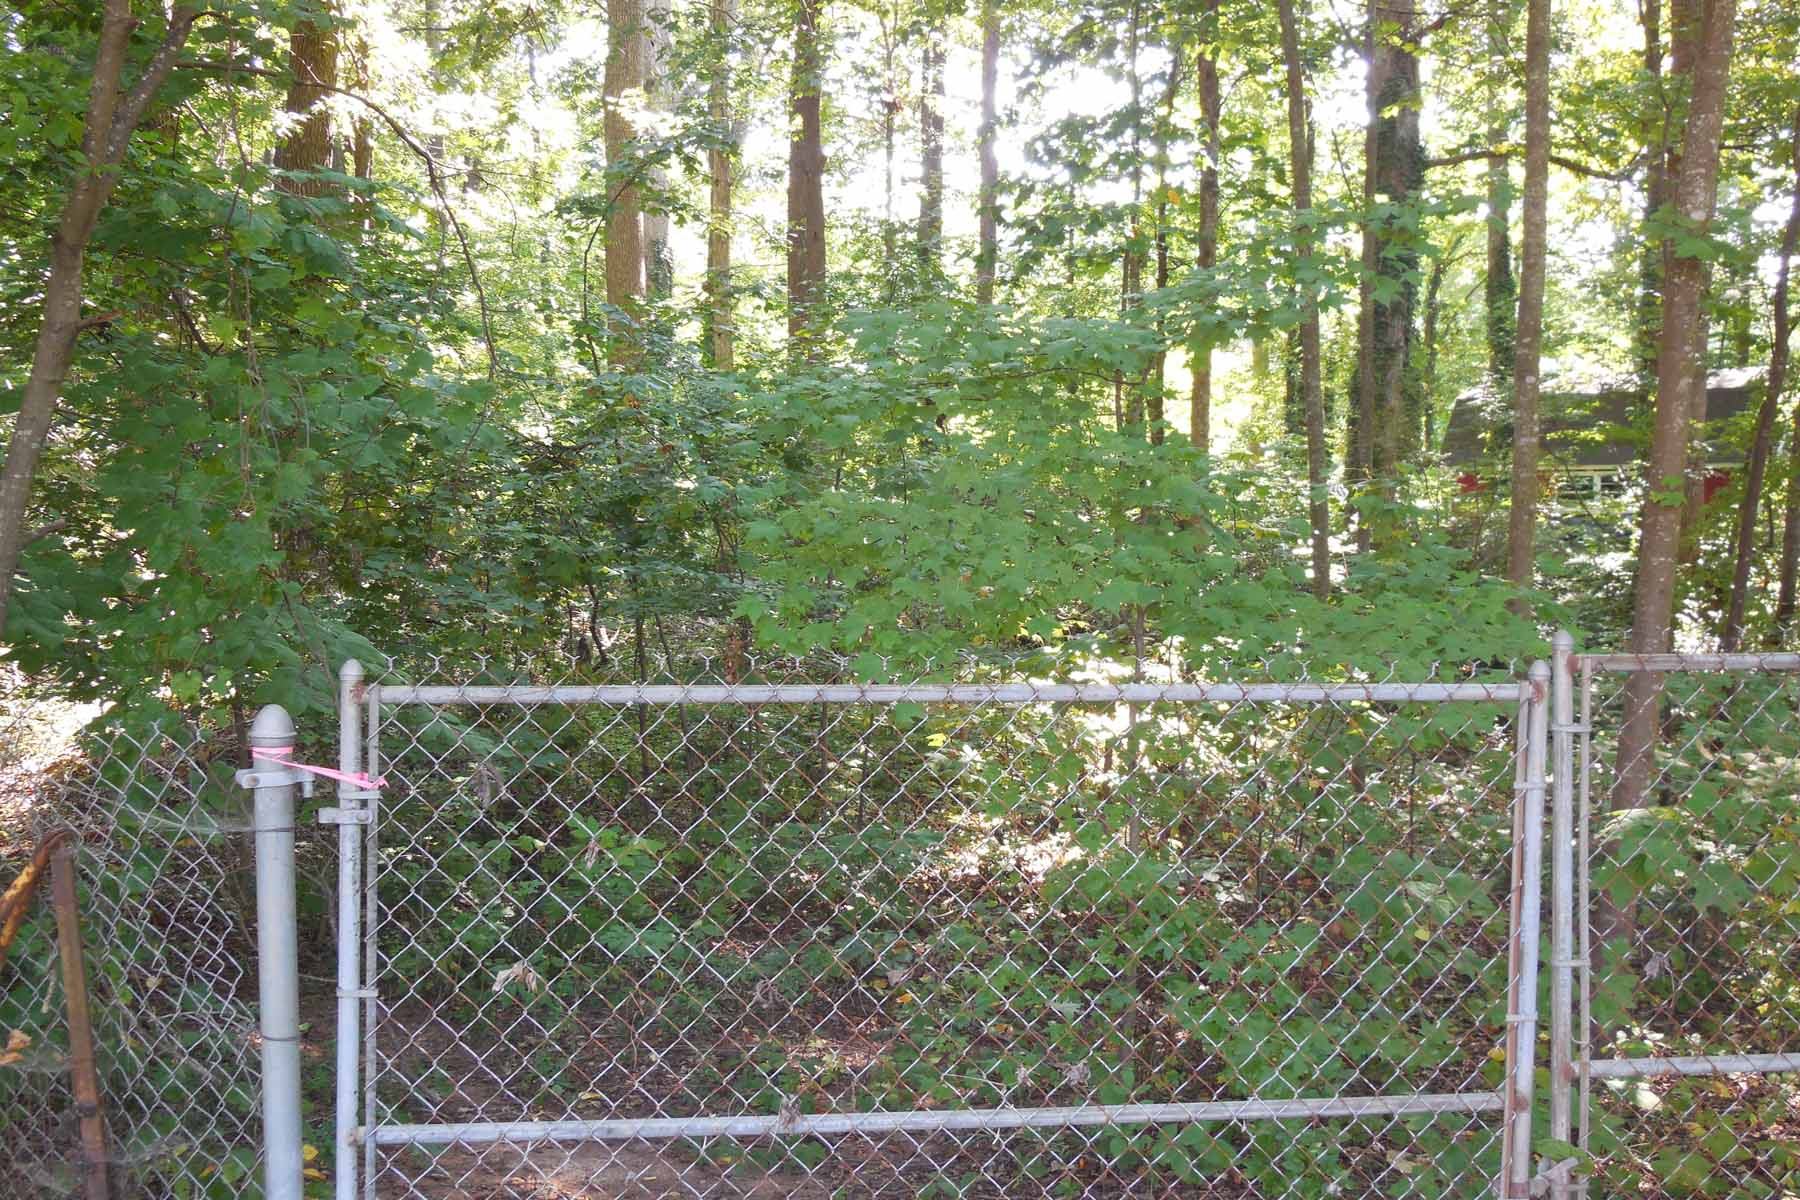 Terreno por un Venta en Lot Opportunity in Historic Norcross 0 Reps Miller Road Norcross, Georgia, 30071 Estados Unidos